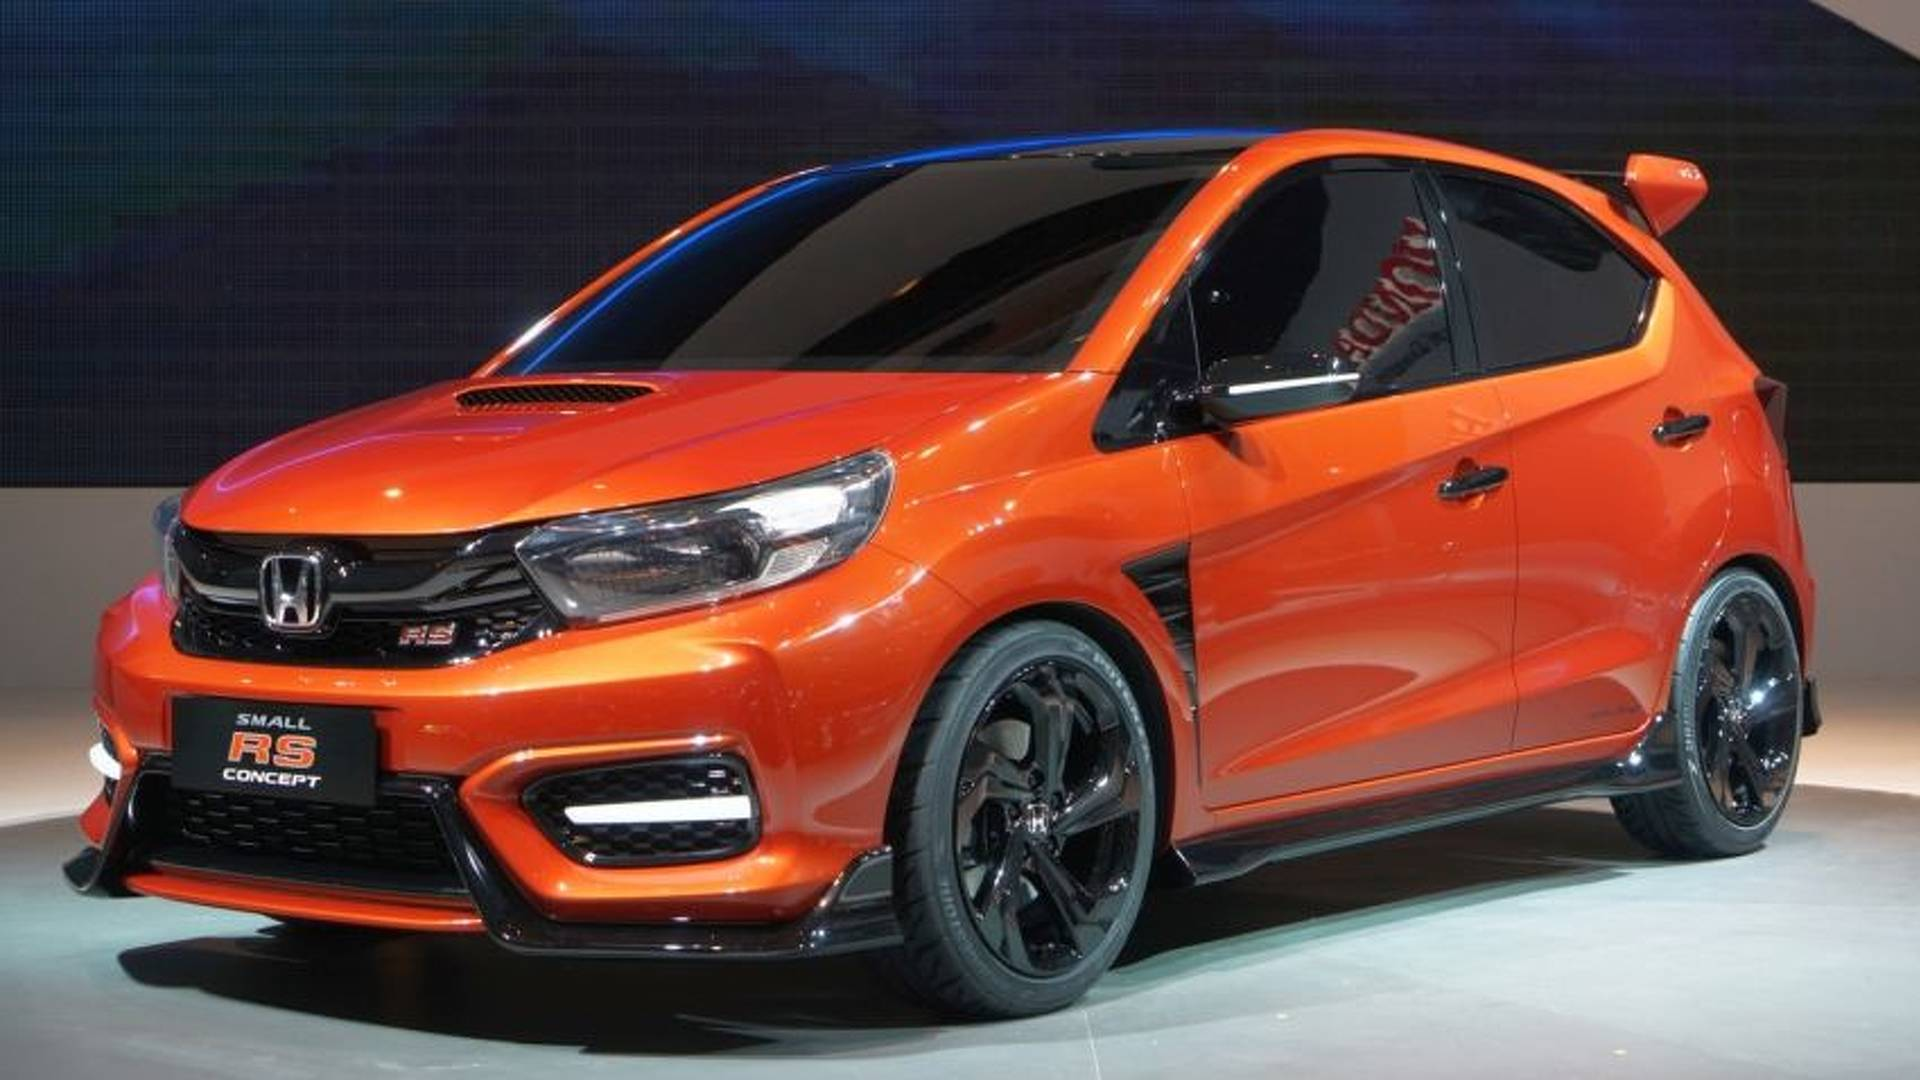 Honda Small Rs Concept Is An Absolutely Adorable Hot Hatch